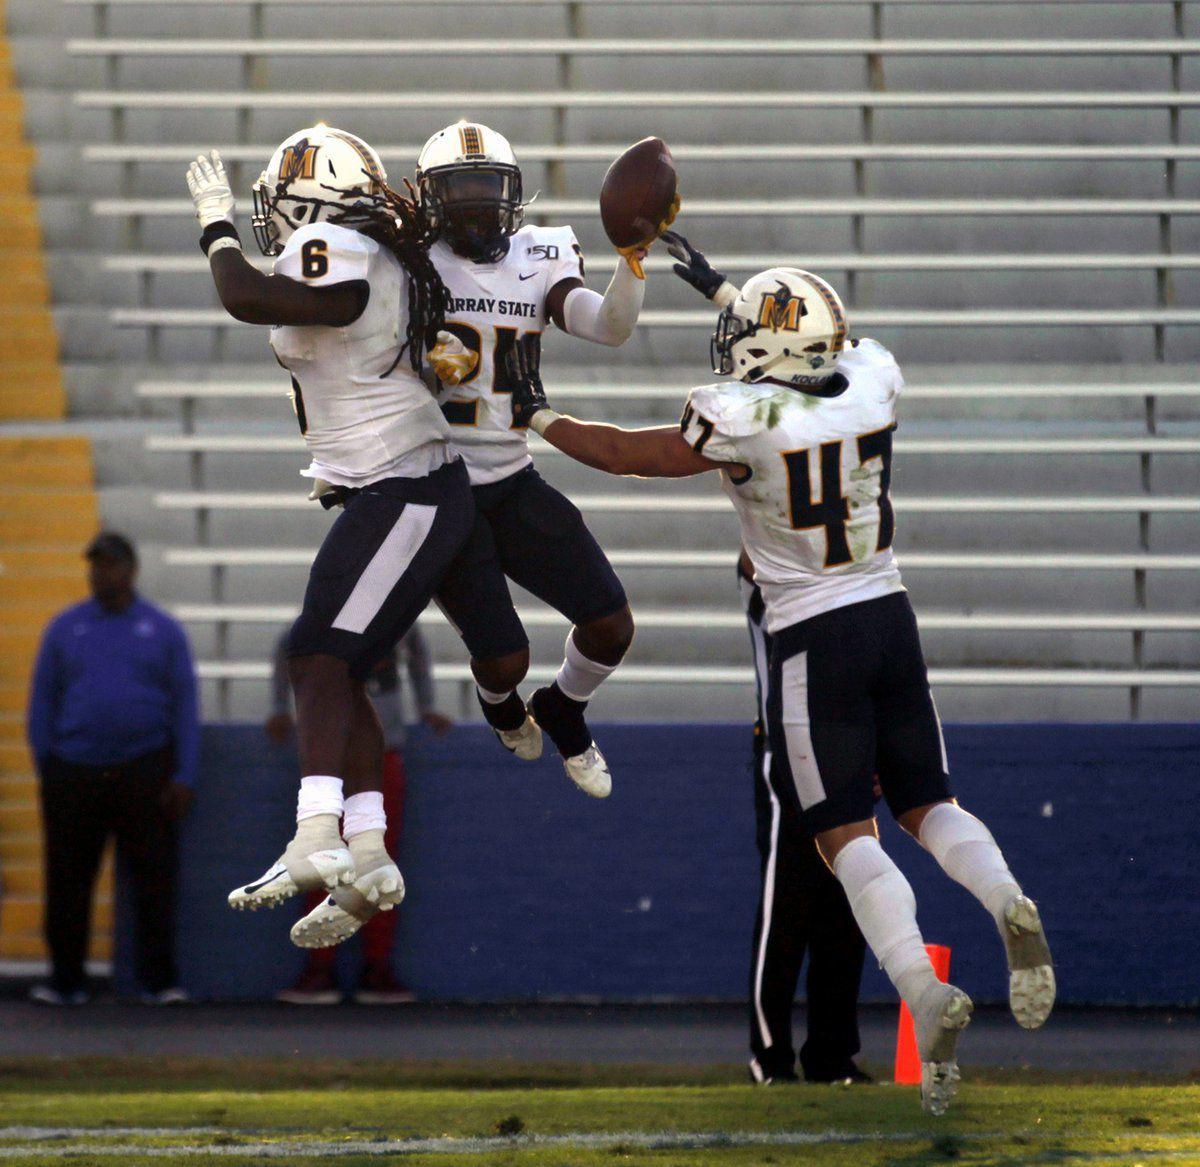 Murray State forces 5 turnovers, tops Tigers